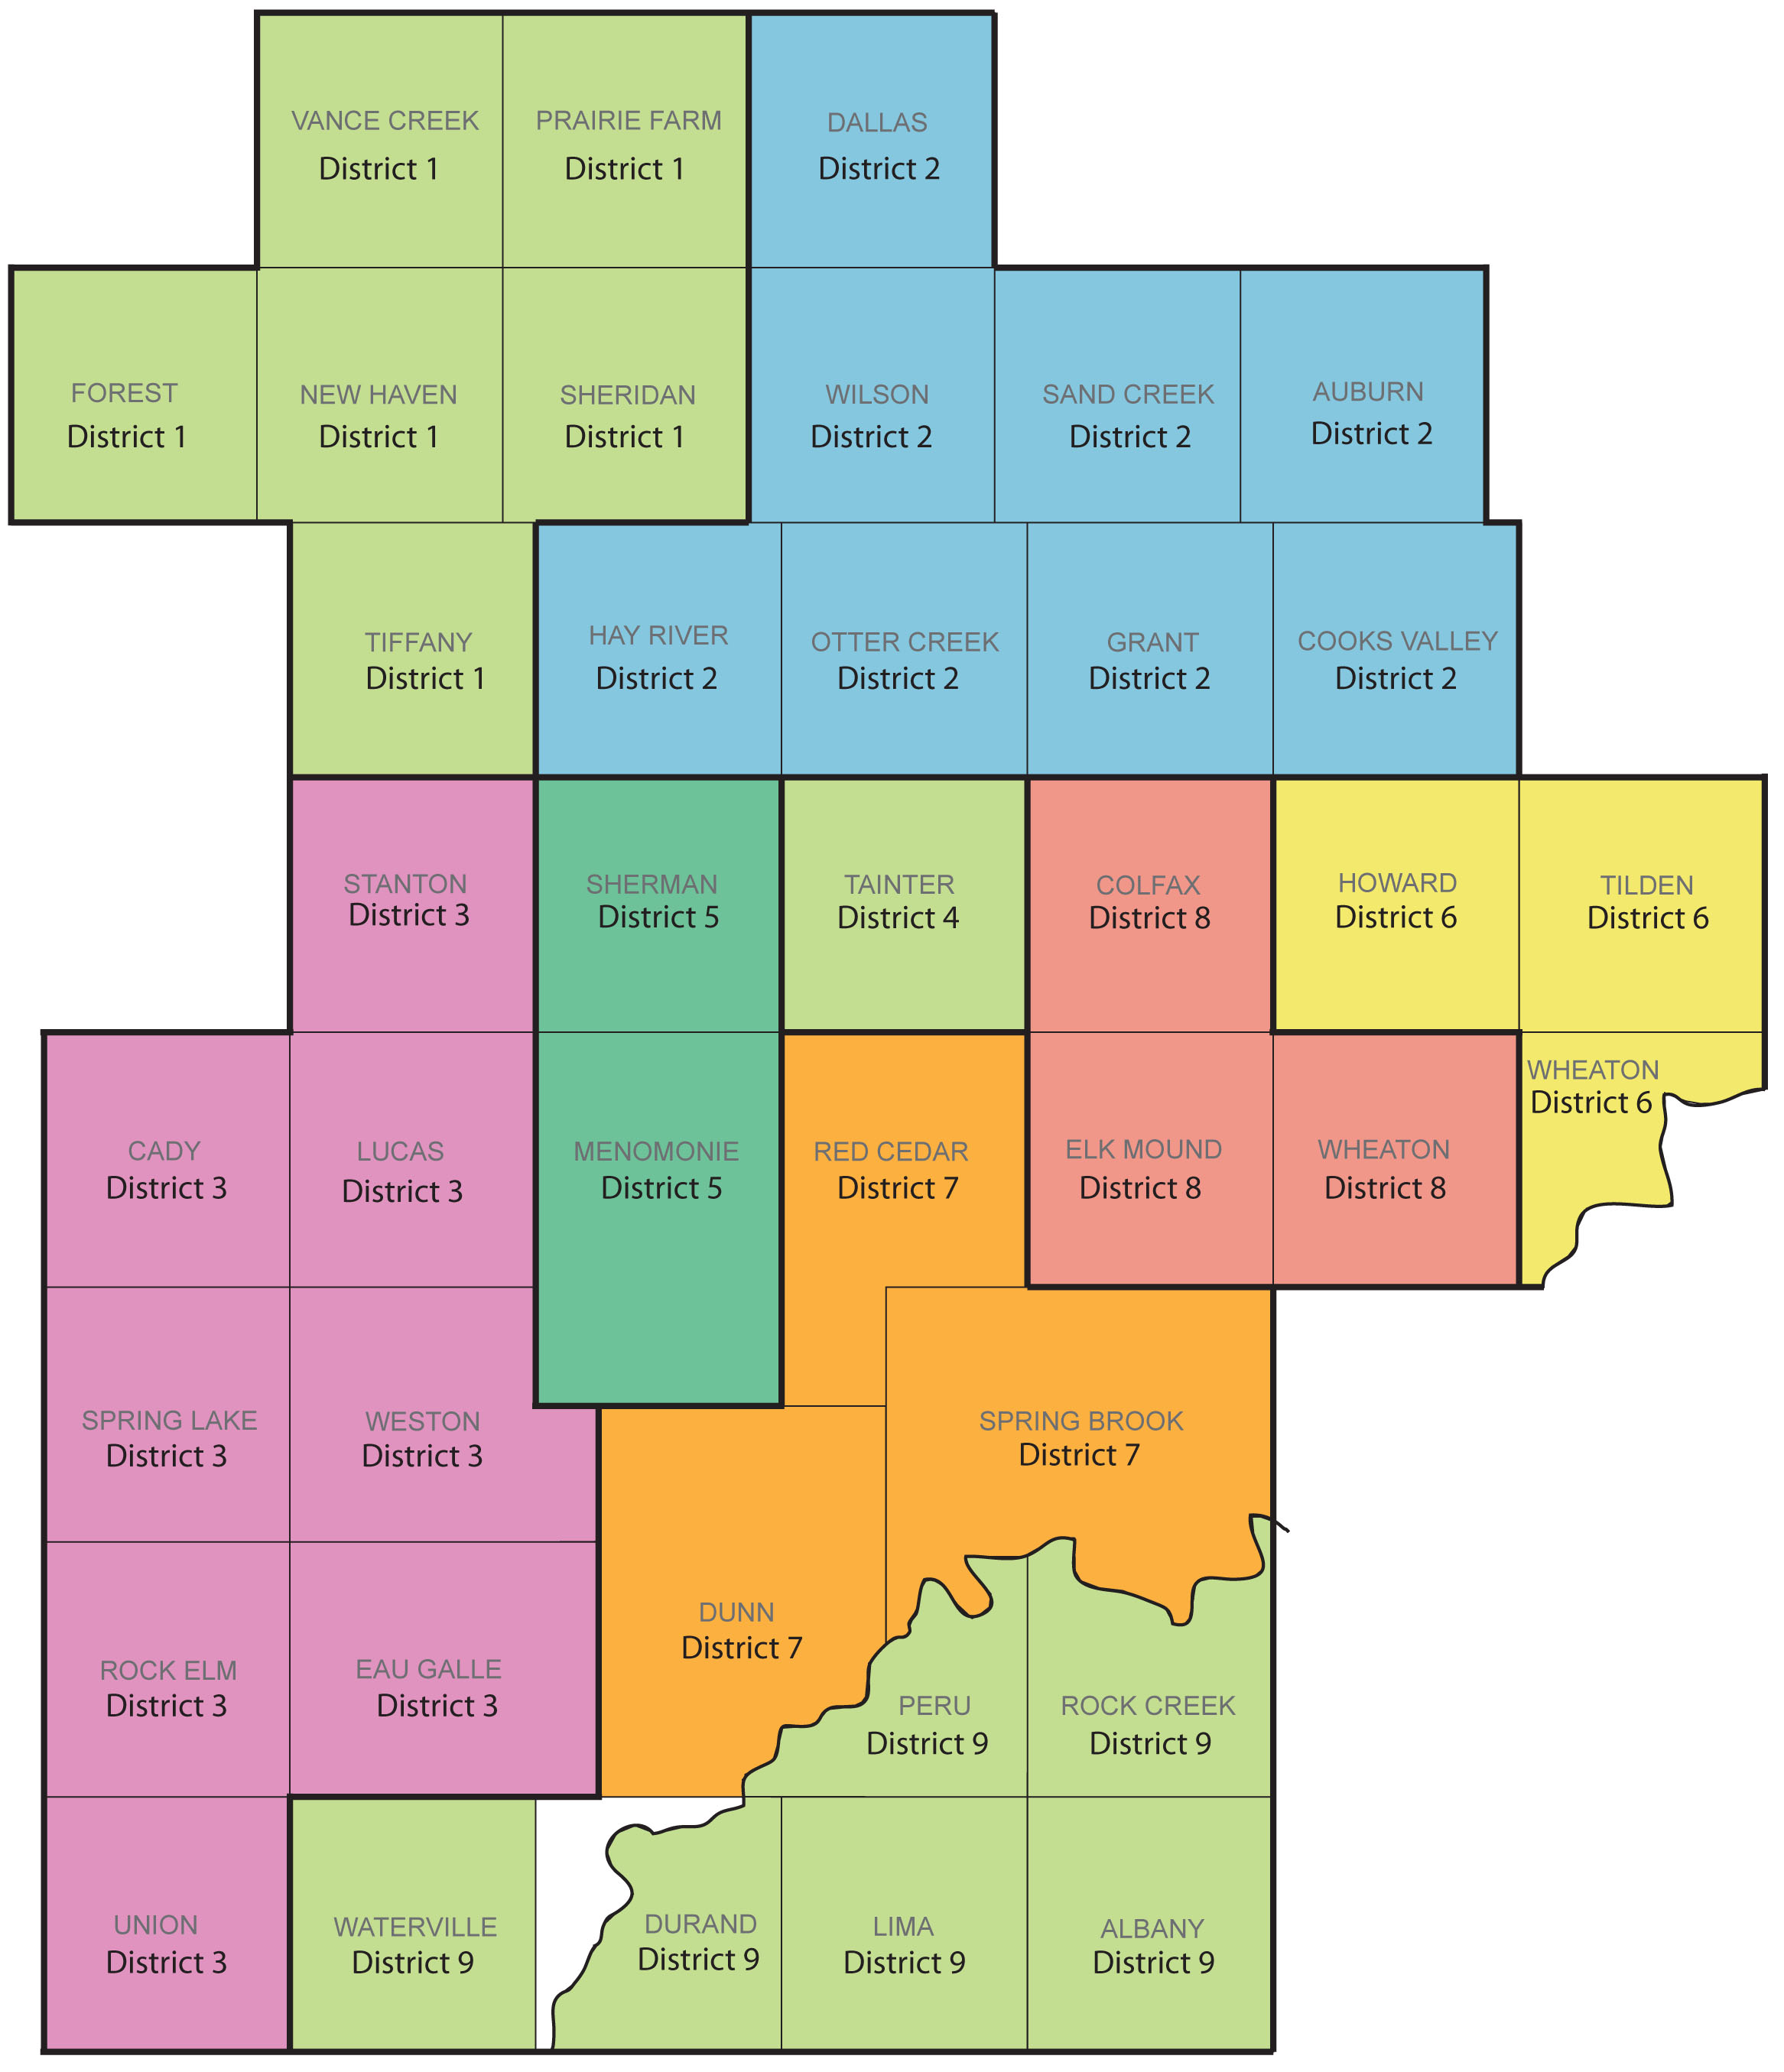 Map of the Districts in Dunn County